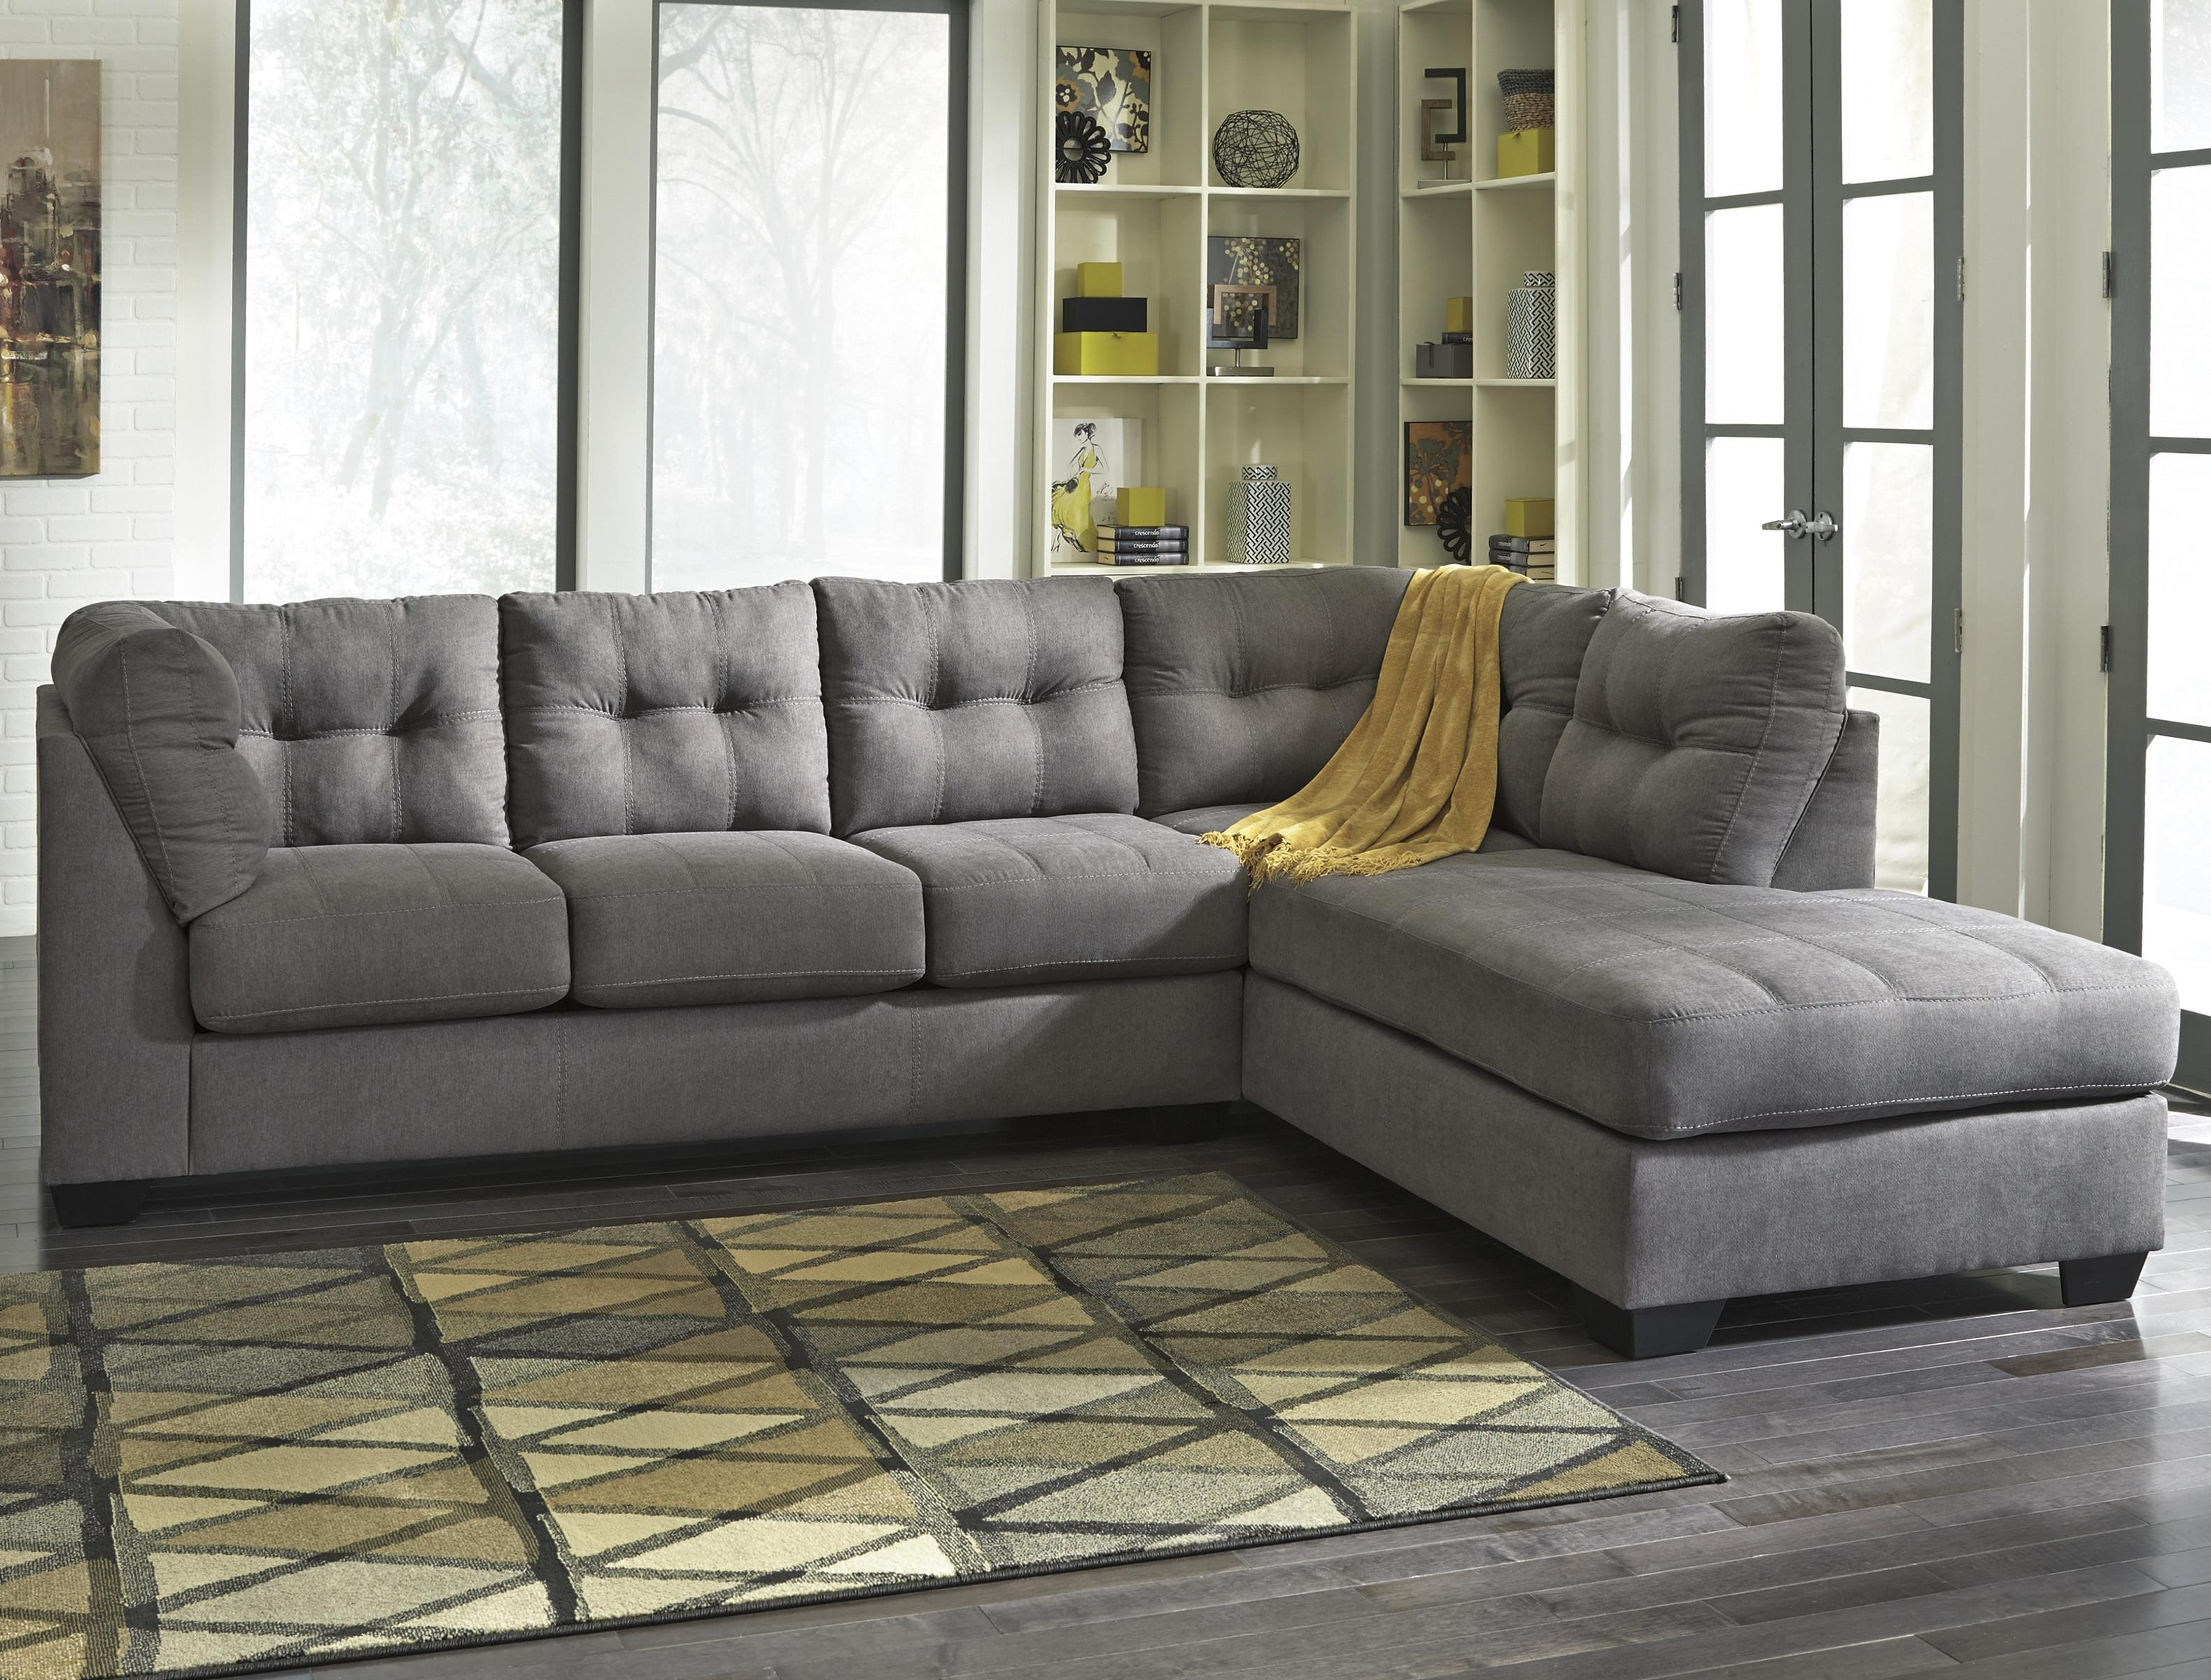 Benchcraft Maier - Charcoal 2-Piece Sectional With Right Chaise with regard to Glamour Ii 3 Piece Sectionals (Image 3 of 30)